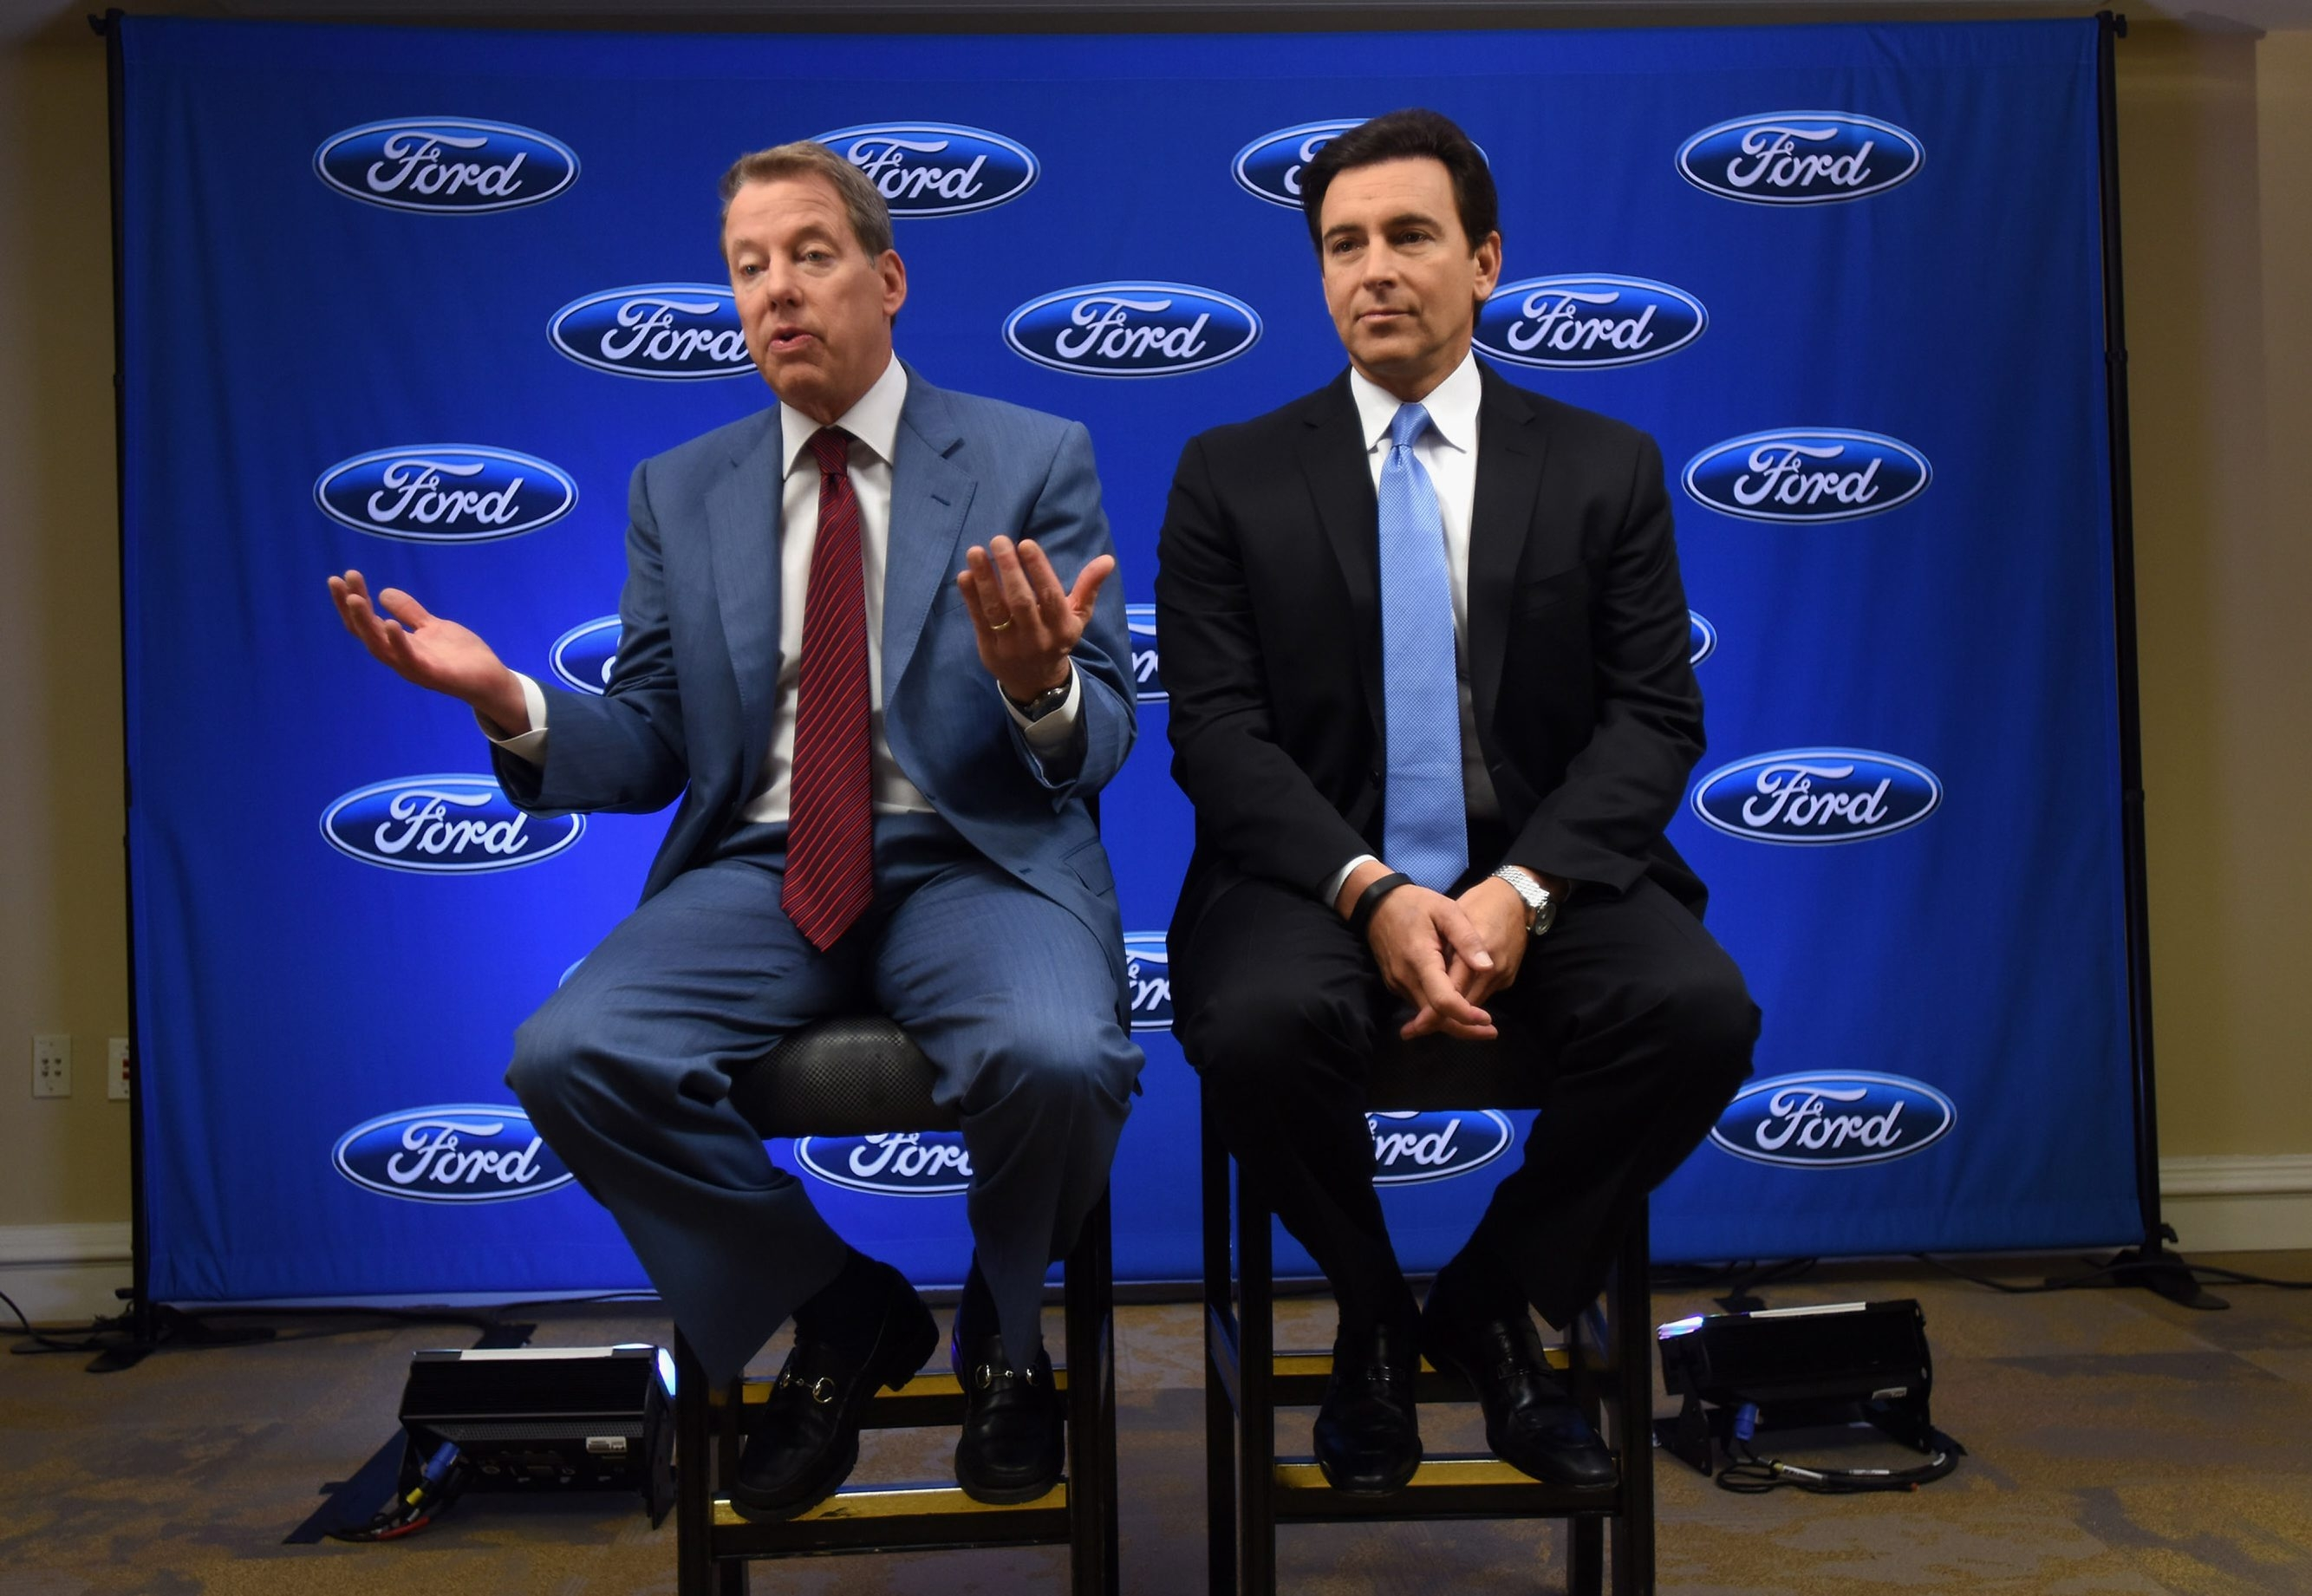 Ford Motor Co. Executive Chairman Bill Ford addresses shareholders, joined by President and CEO Mark Fields.